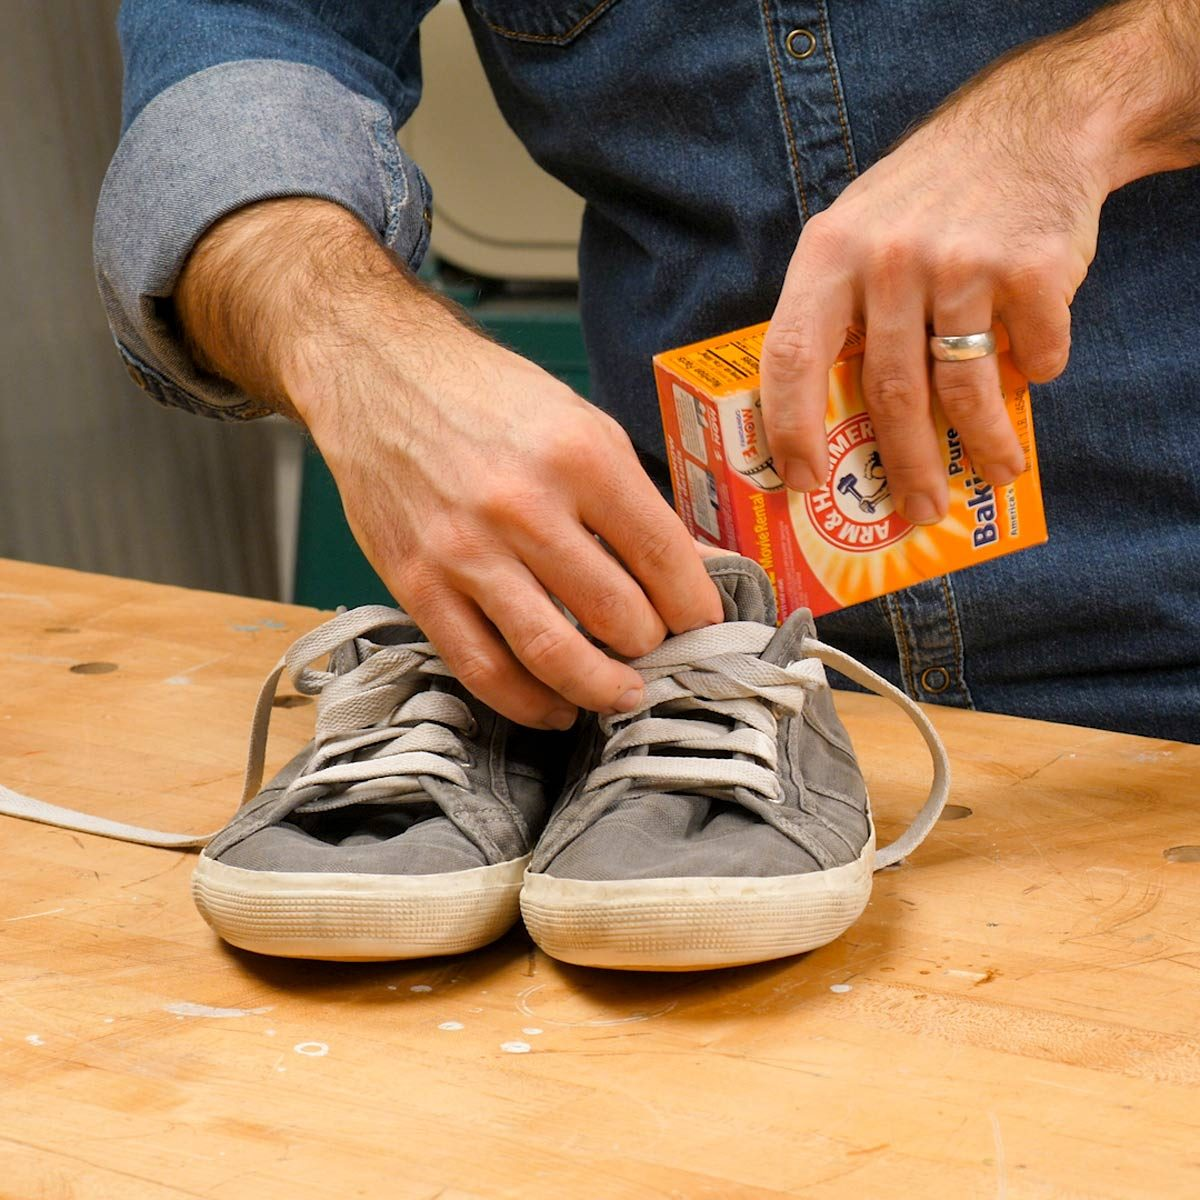 8 baking soda smelly shoe baking soda in shoes